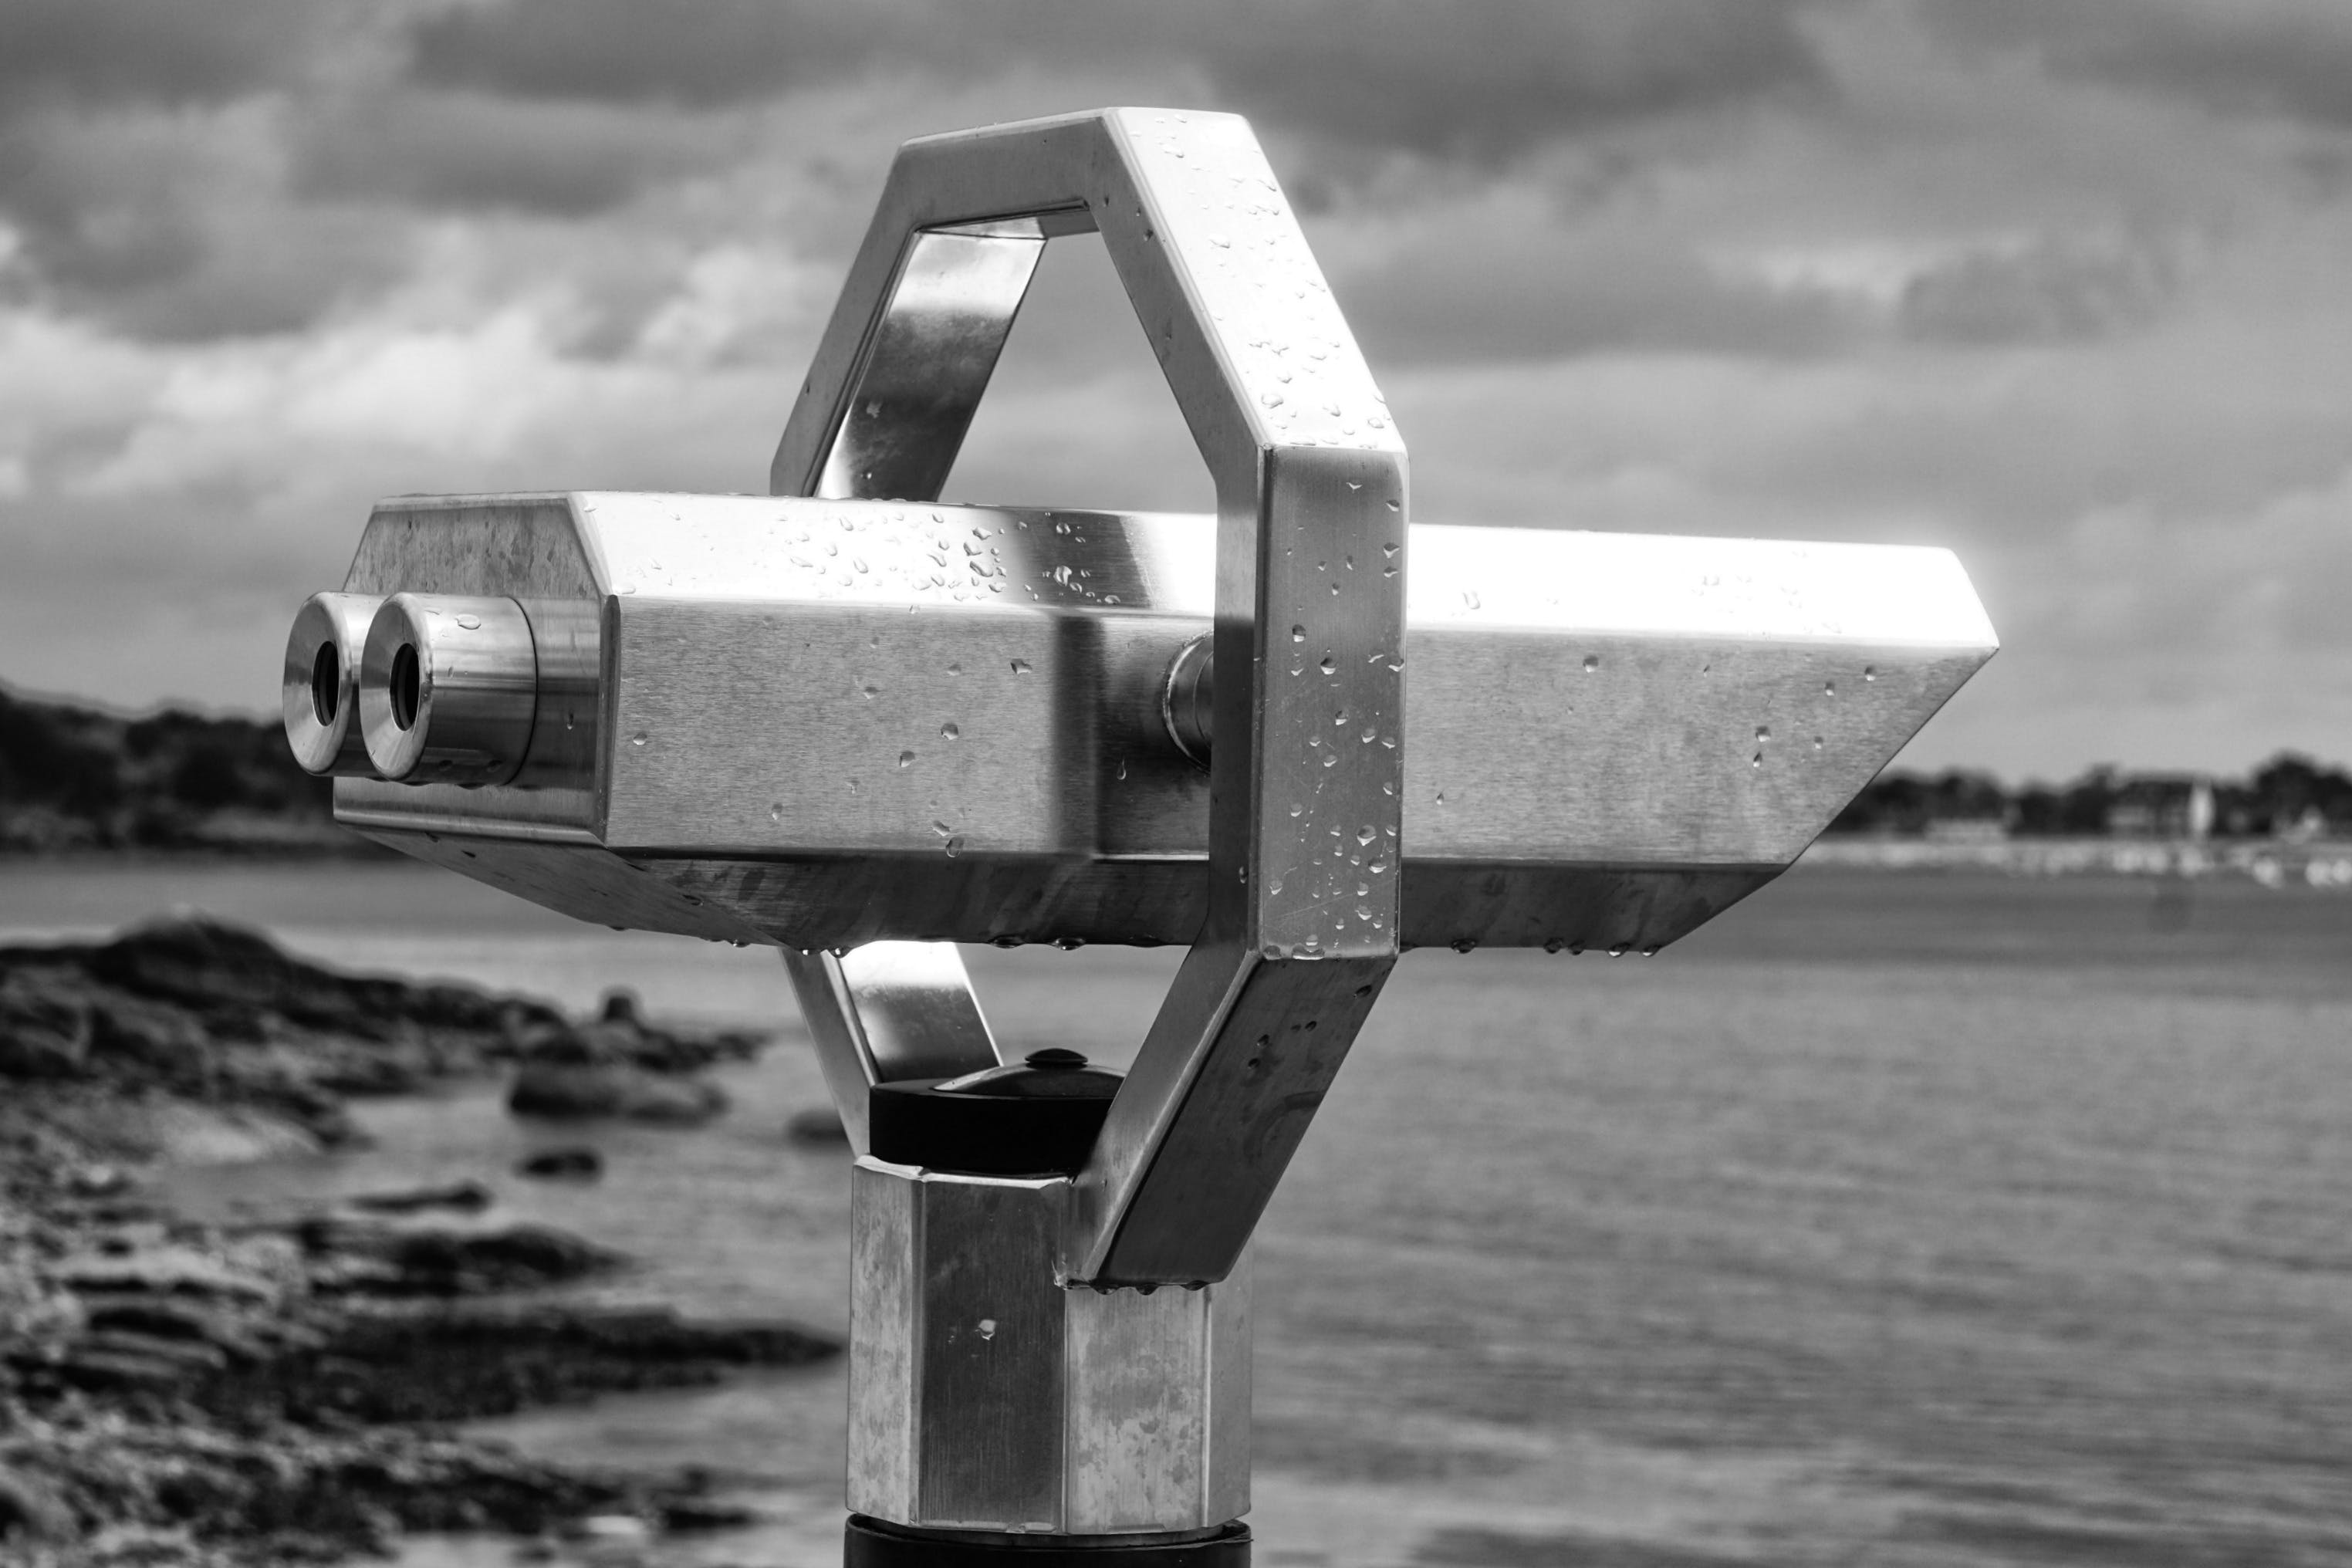 Grayscale Photography of Tower Viewer